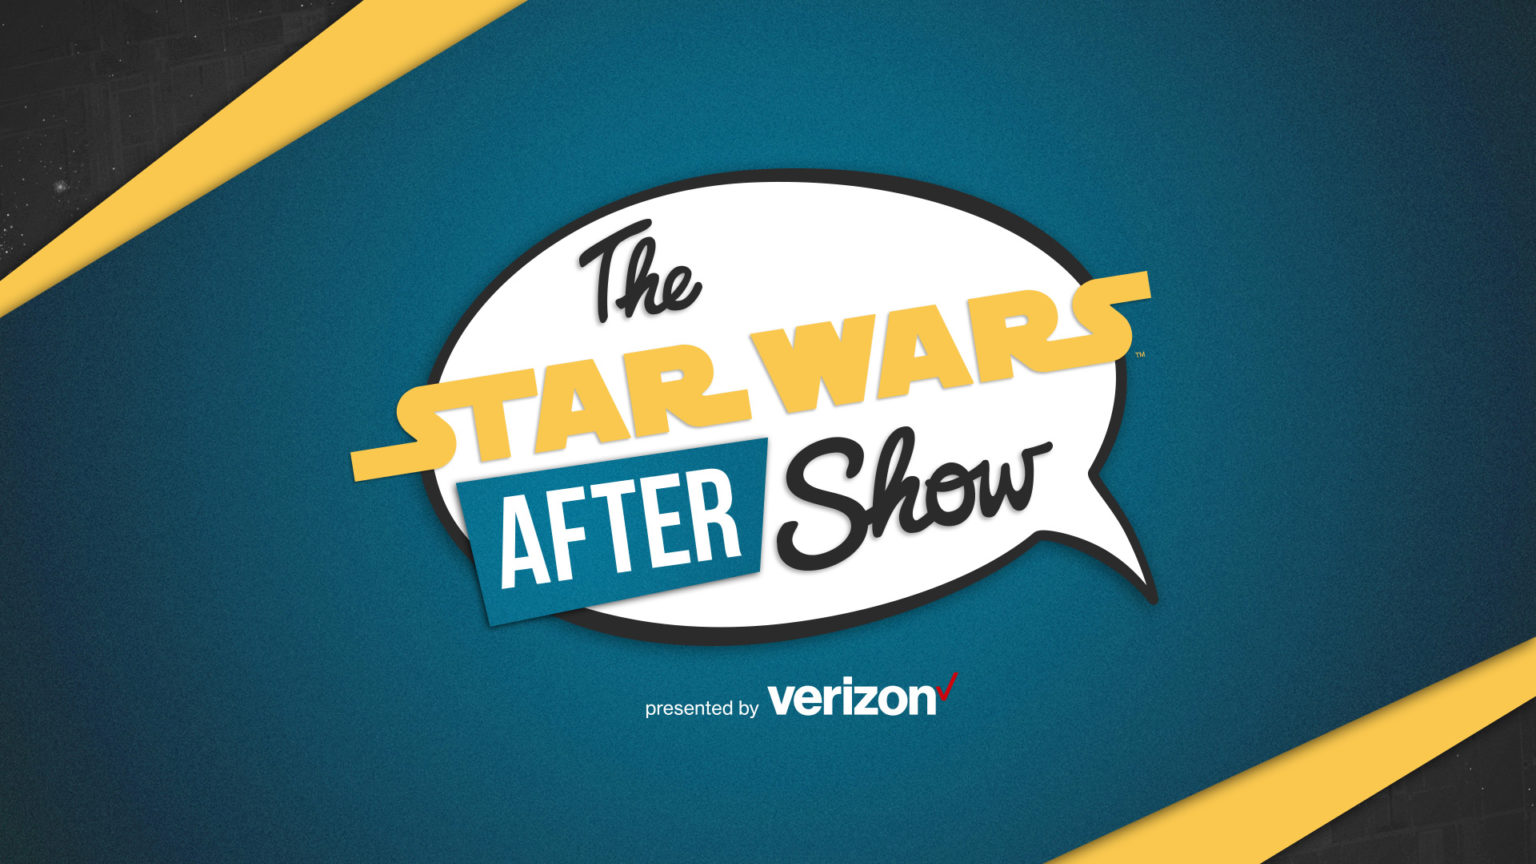 the-star-wars-after-show-1536x864-667187813203